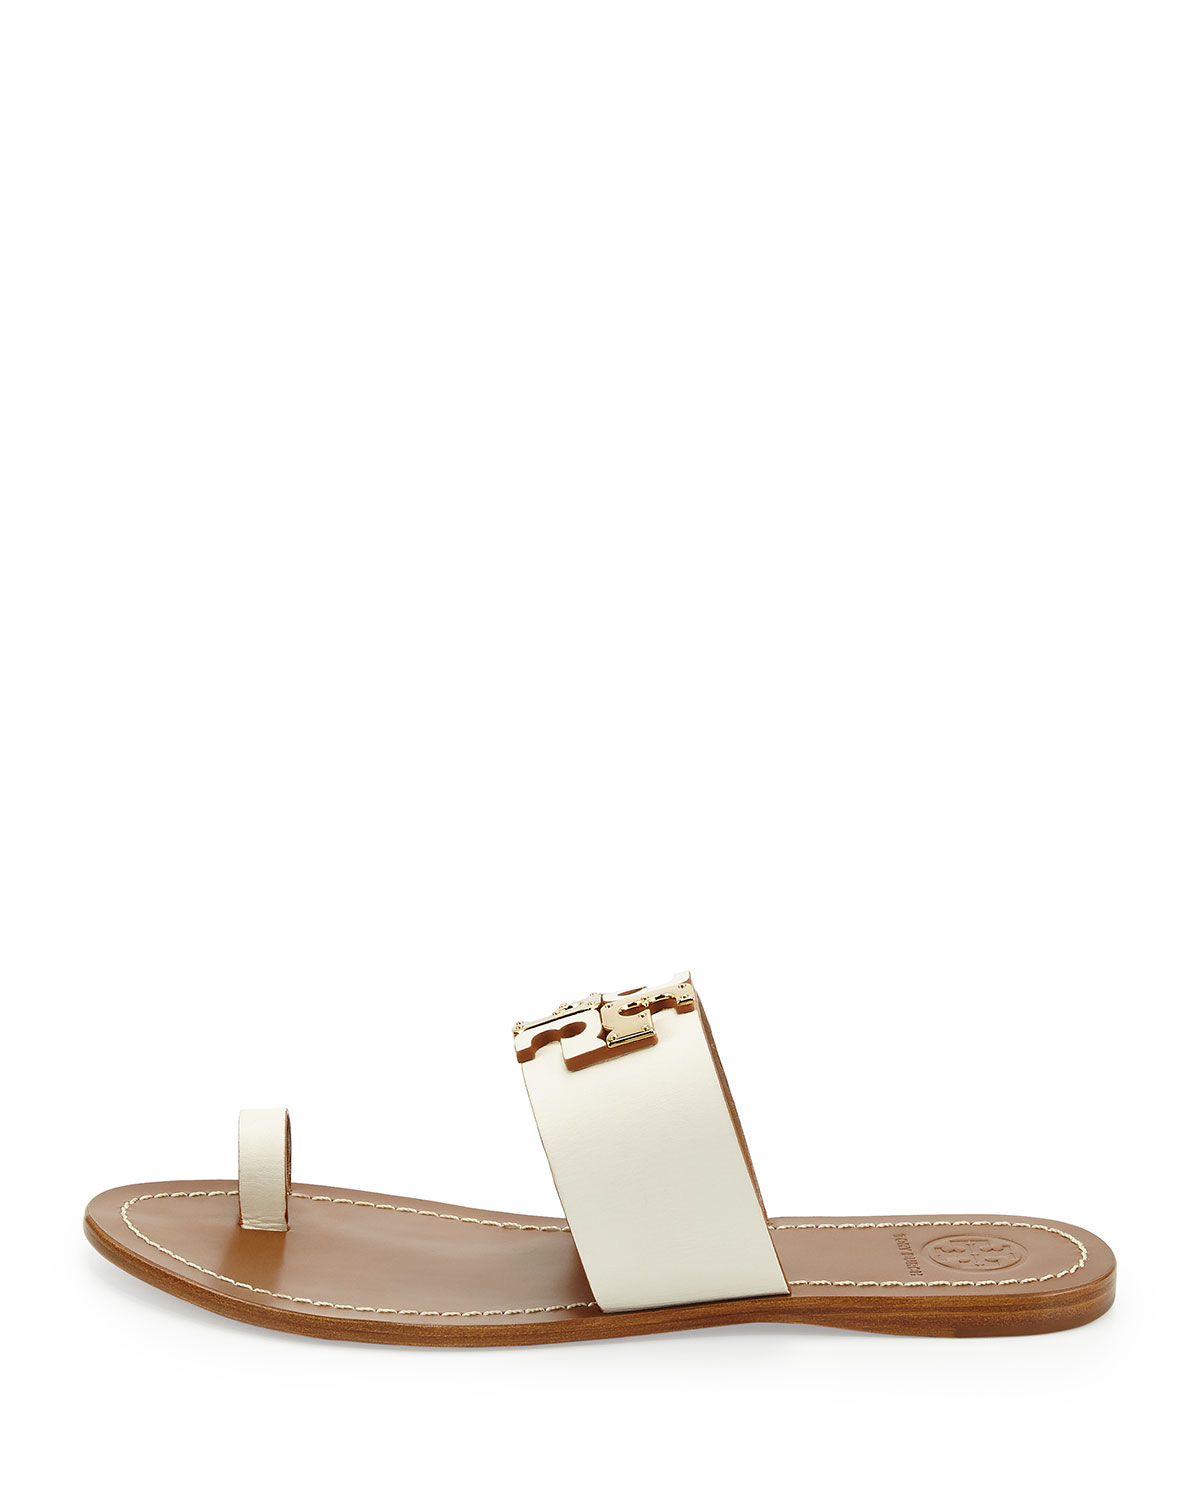 ad53f6148 Lyst - Tory Burch Lowell Leather Logo Sandal in Natural